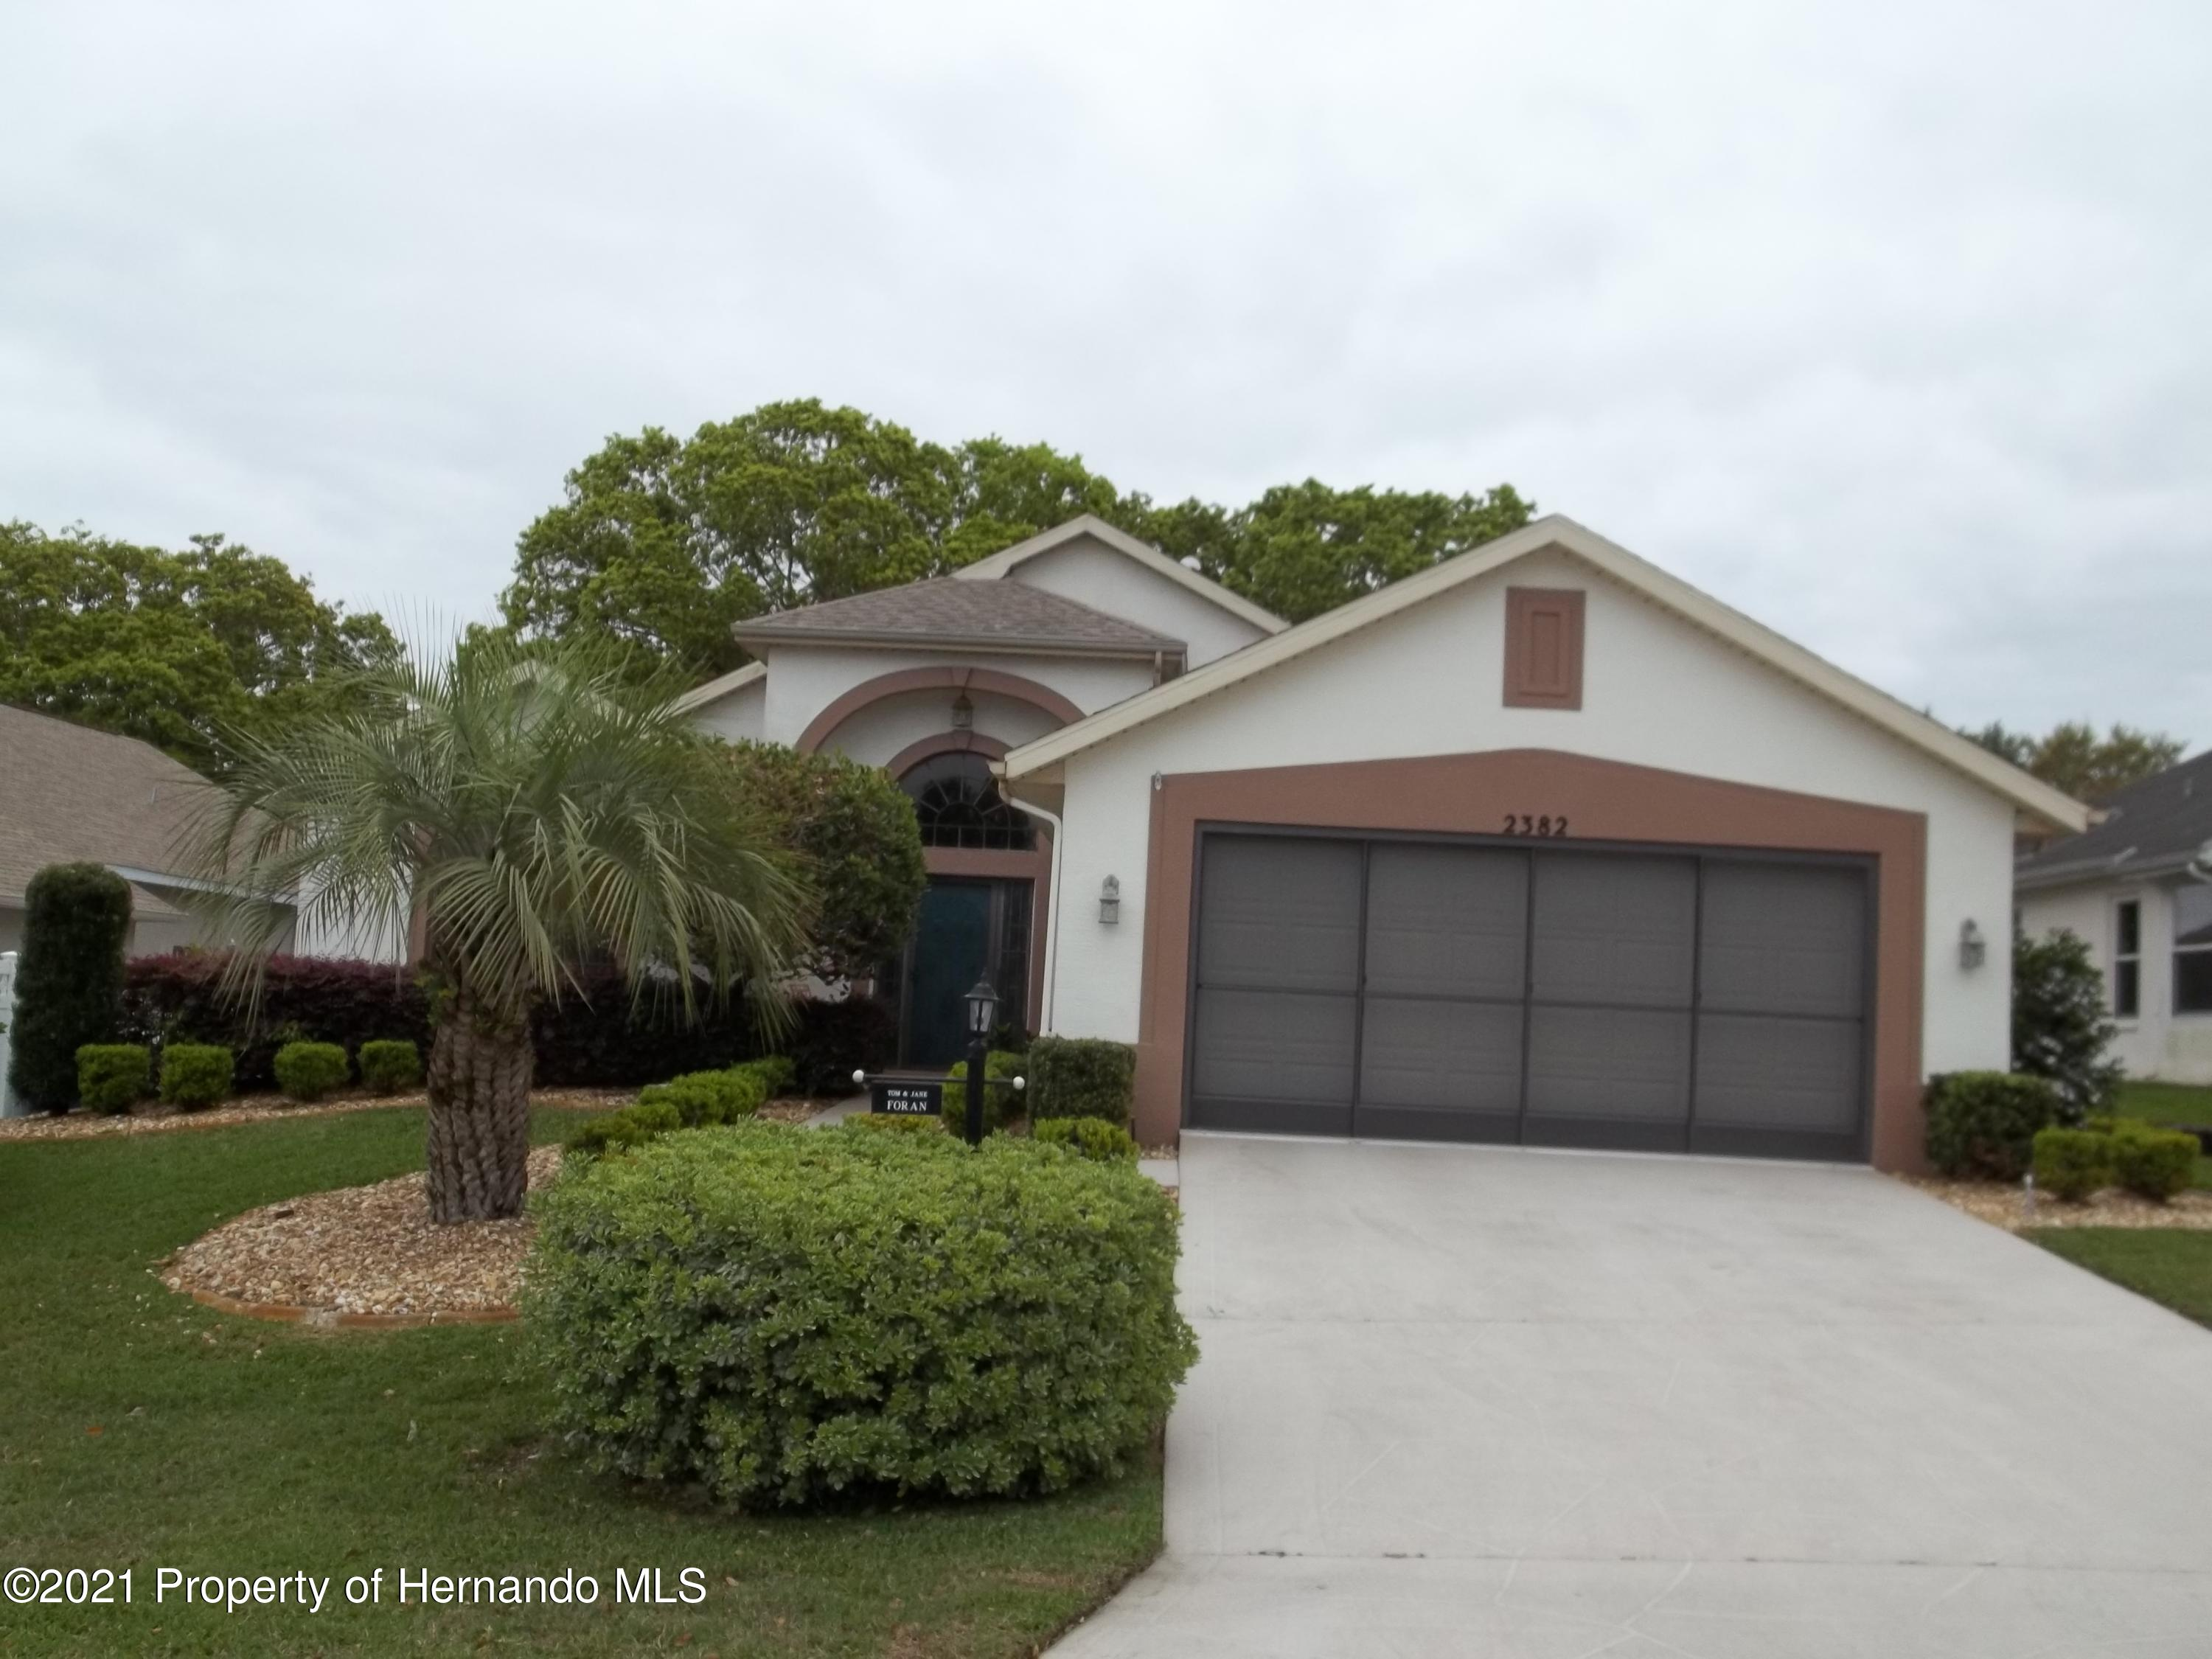 Details for 2382 Summercrest Lane, Spring Hill, FL 34606